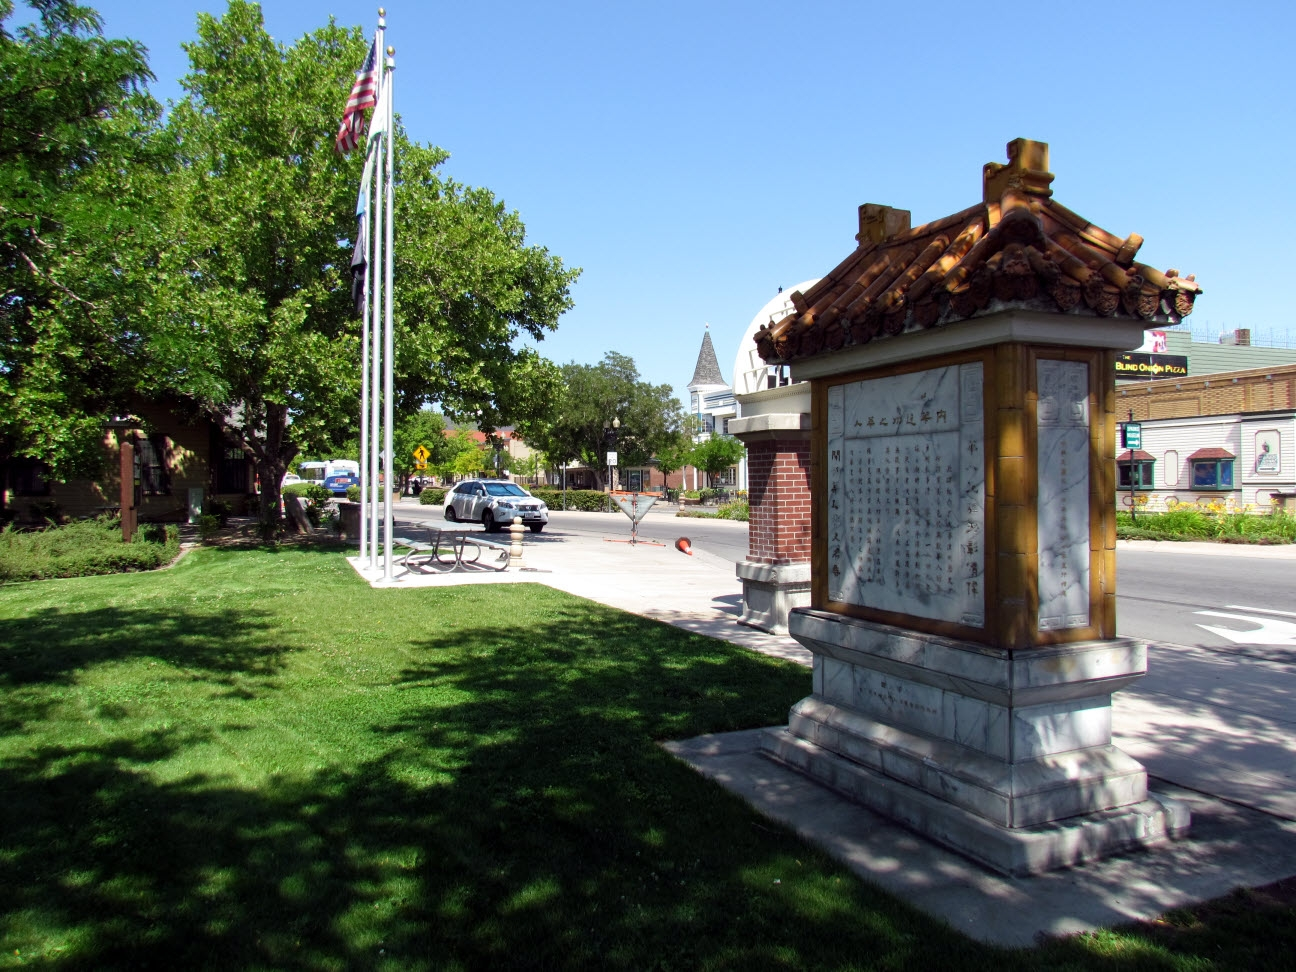 Rear View of Chinese in Nevada Marker